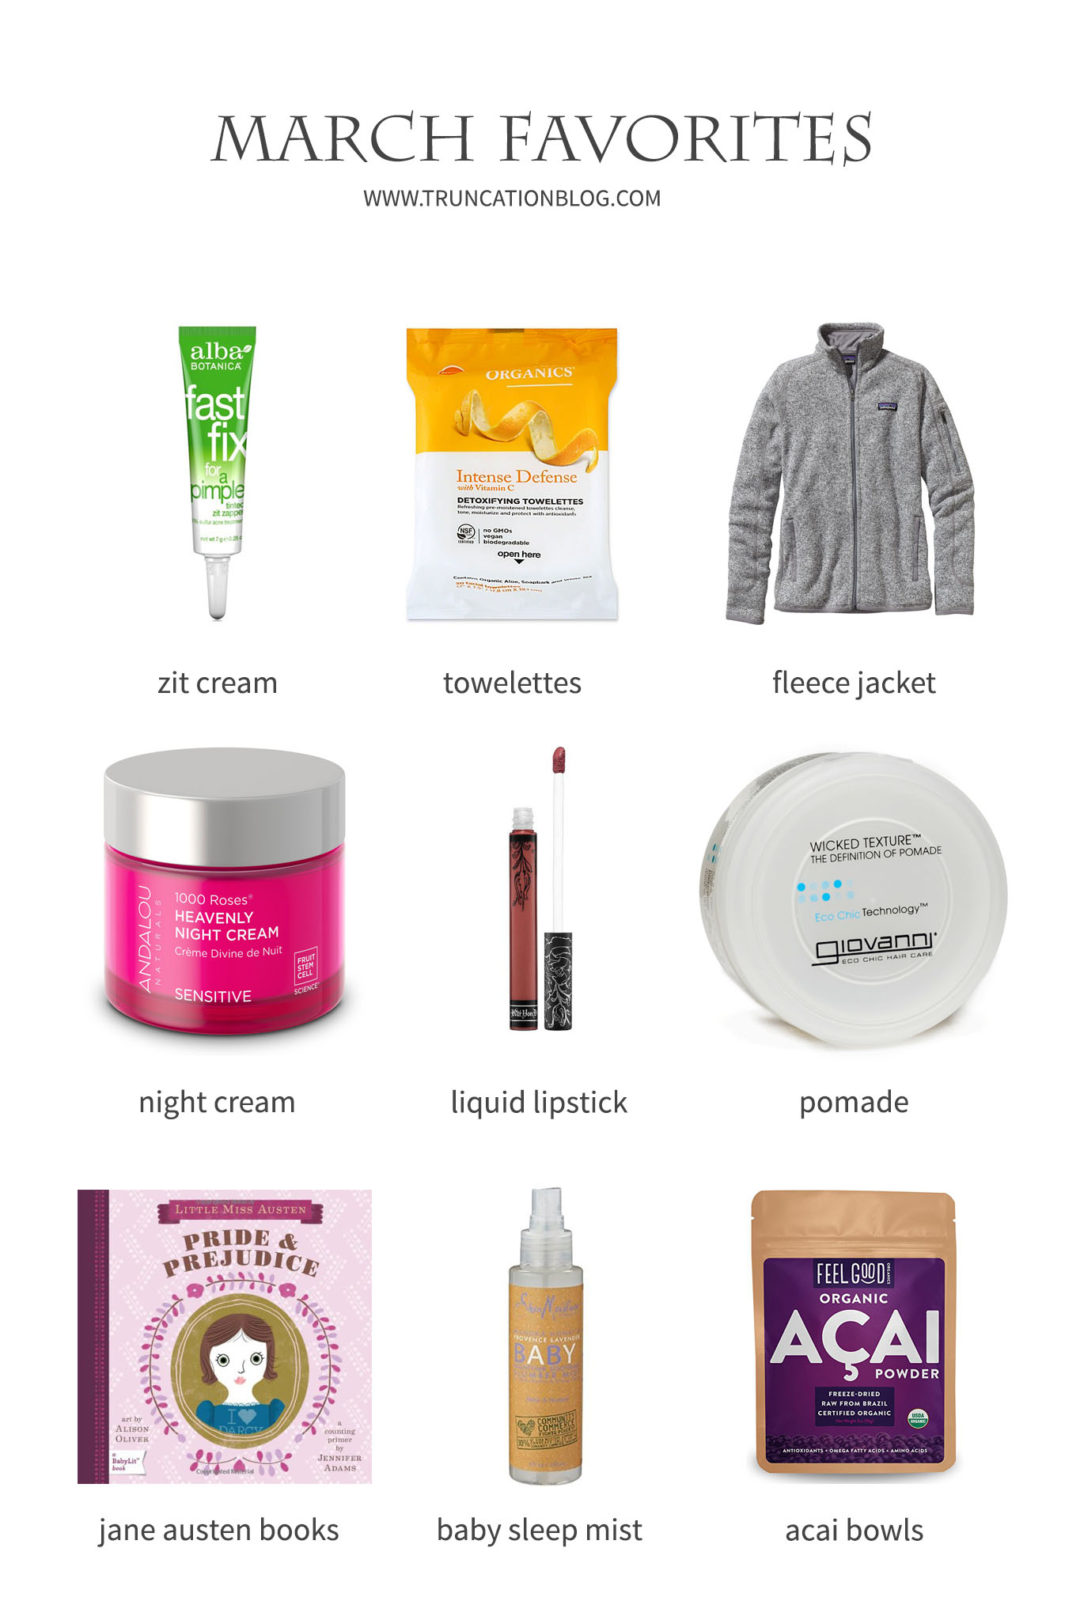 Karin Rambo of truncationblog.com shares her March Favorites: Ethical Beauty, Cruelty Free Makeup, and Skincare